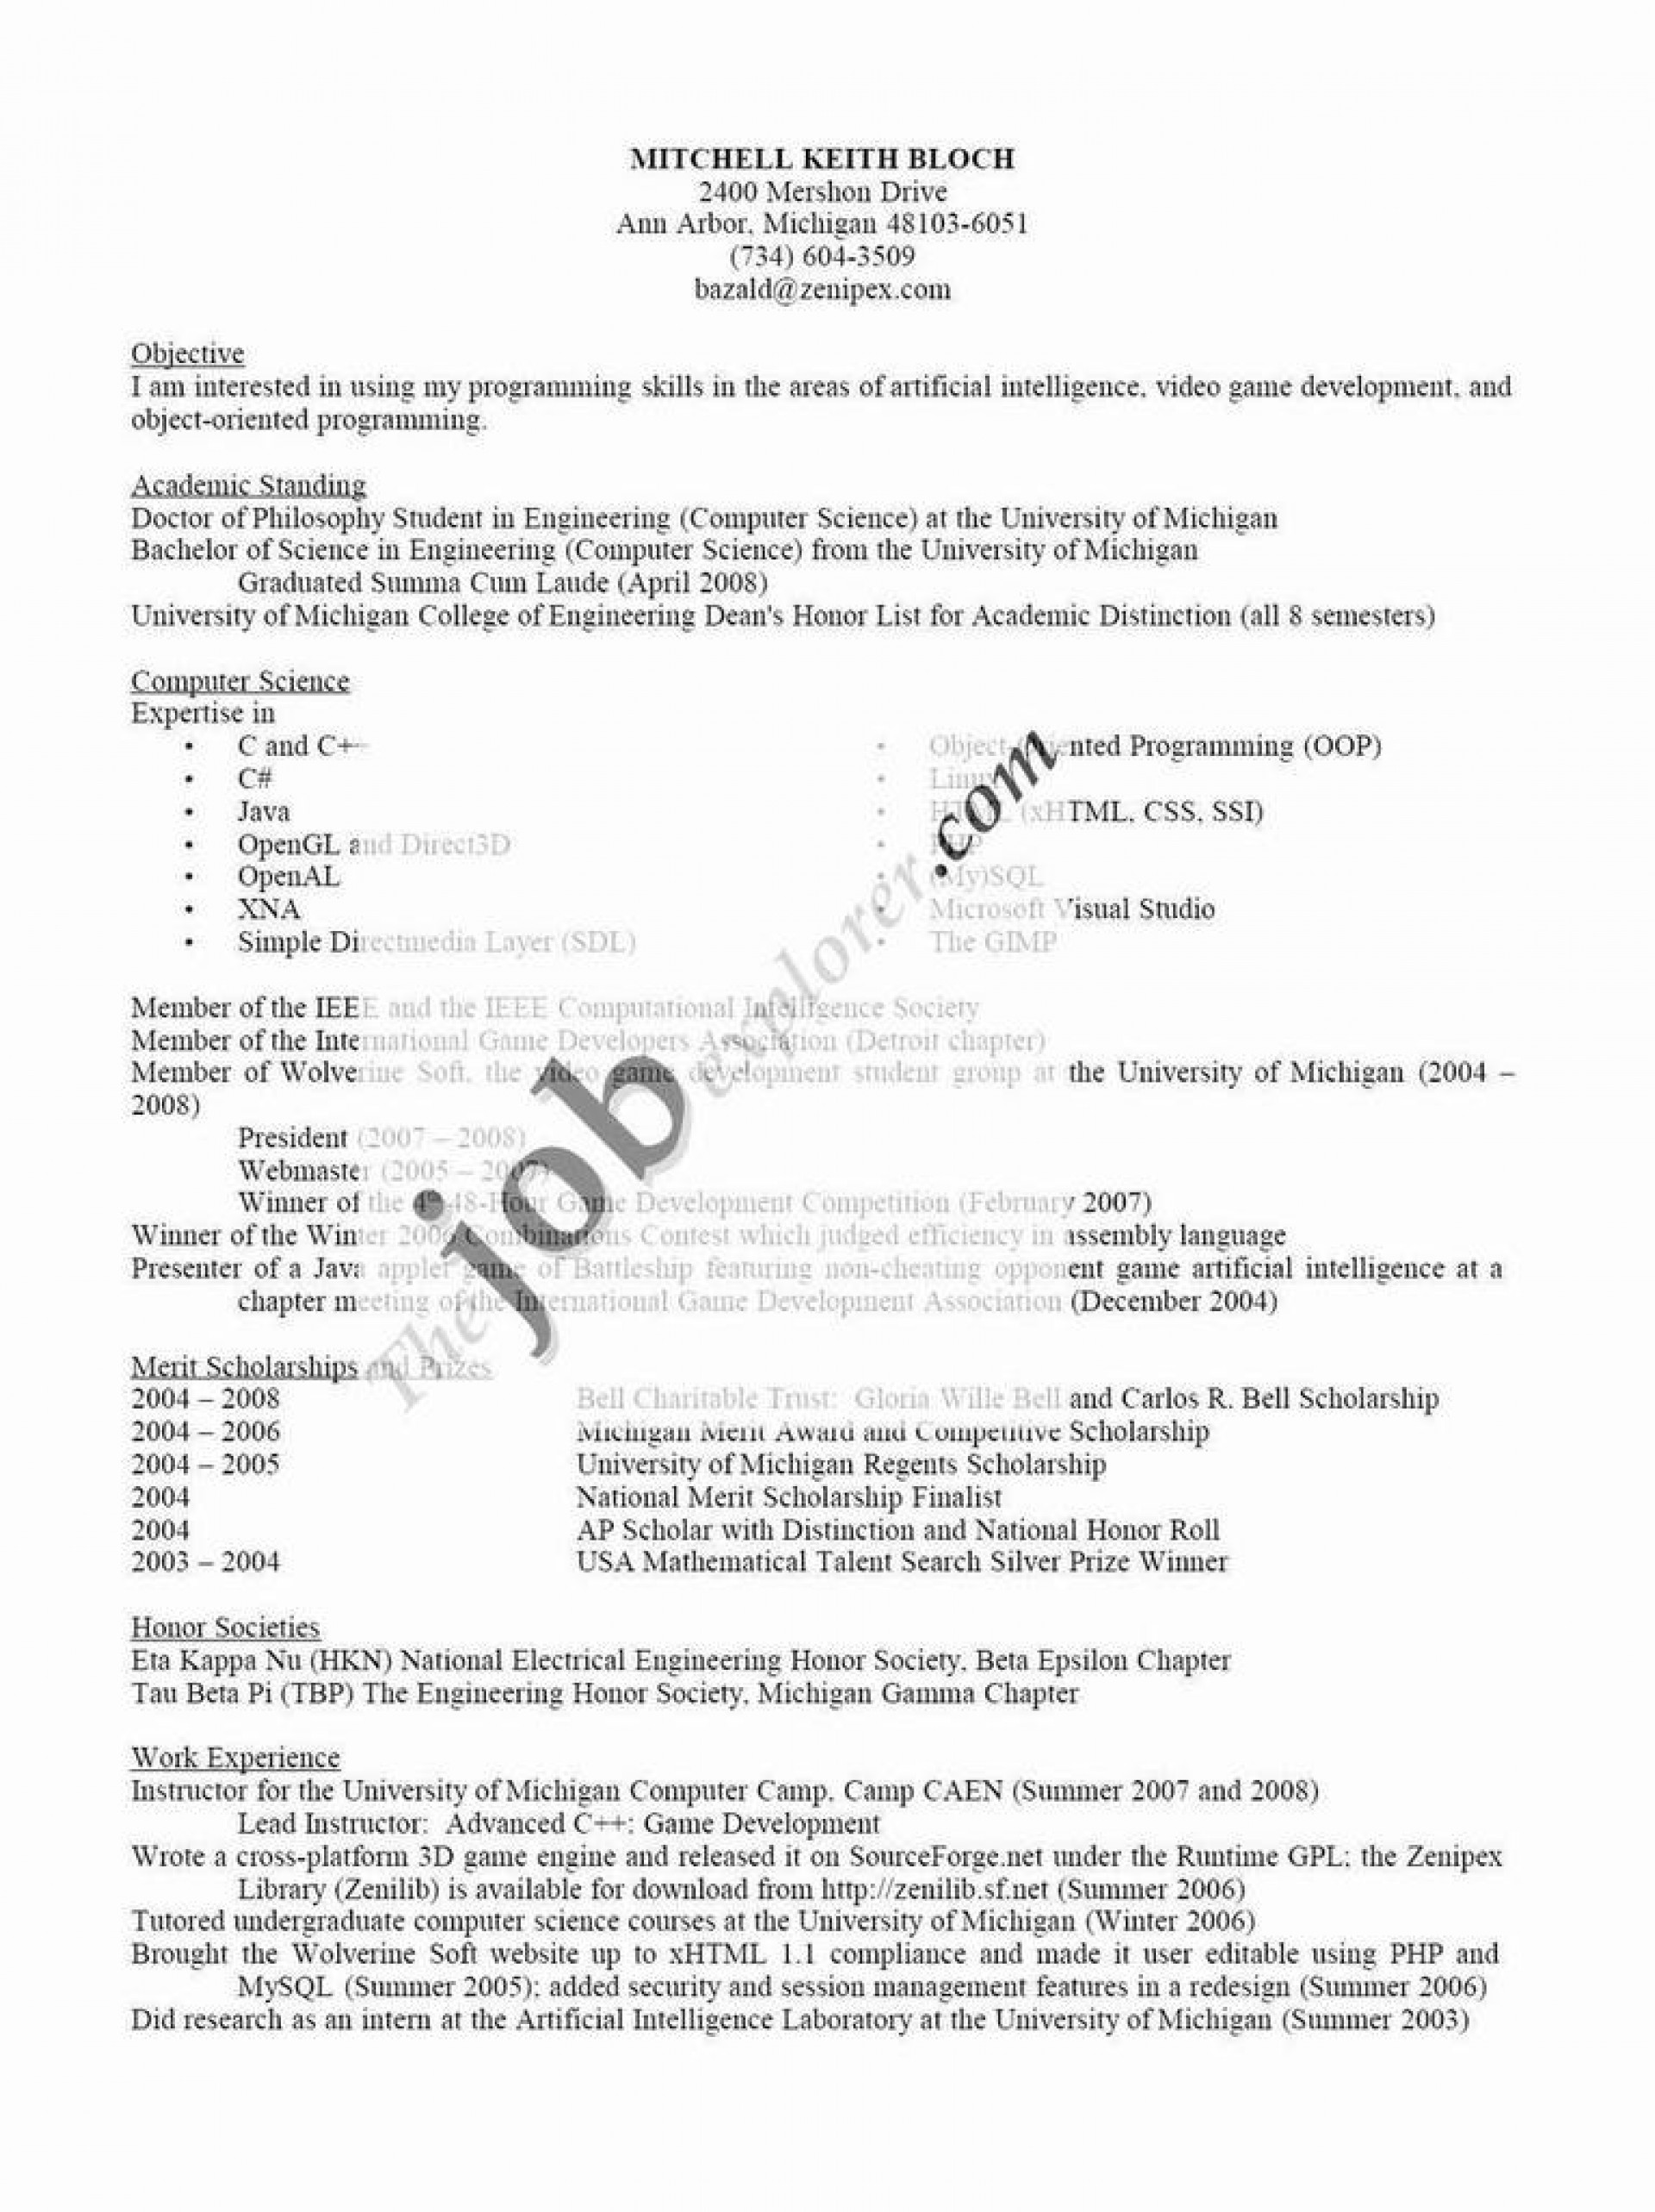 003 Buy Custom Essay Medical Assistant Resume Templates For Microsoft Word Inspirational Usa Cheap Line Service Cultureworks Sample Beautiful Written Writing Services 1920